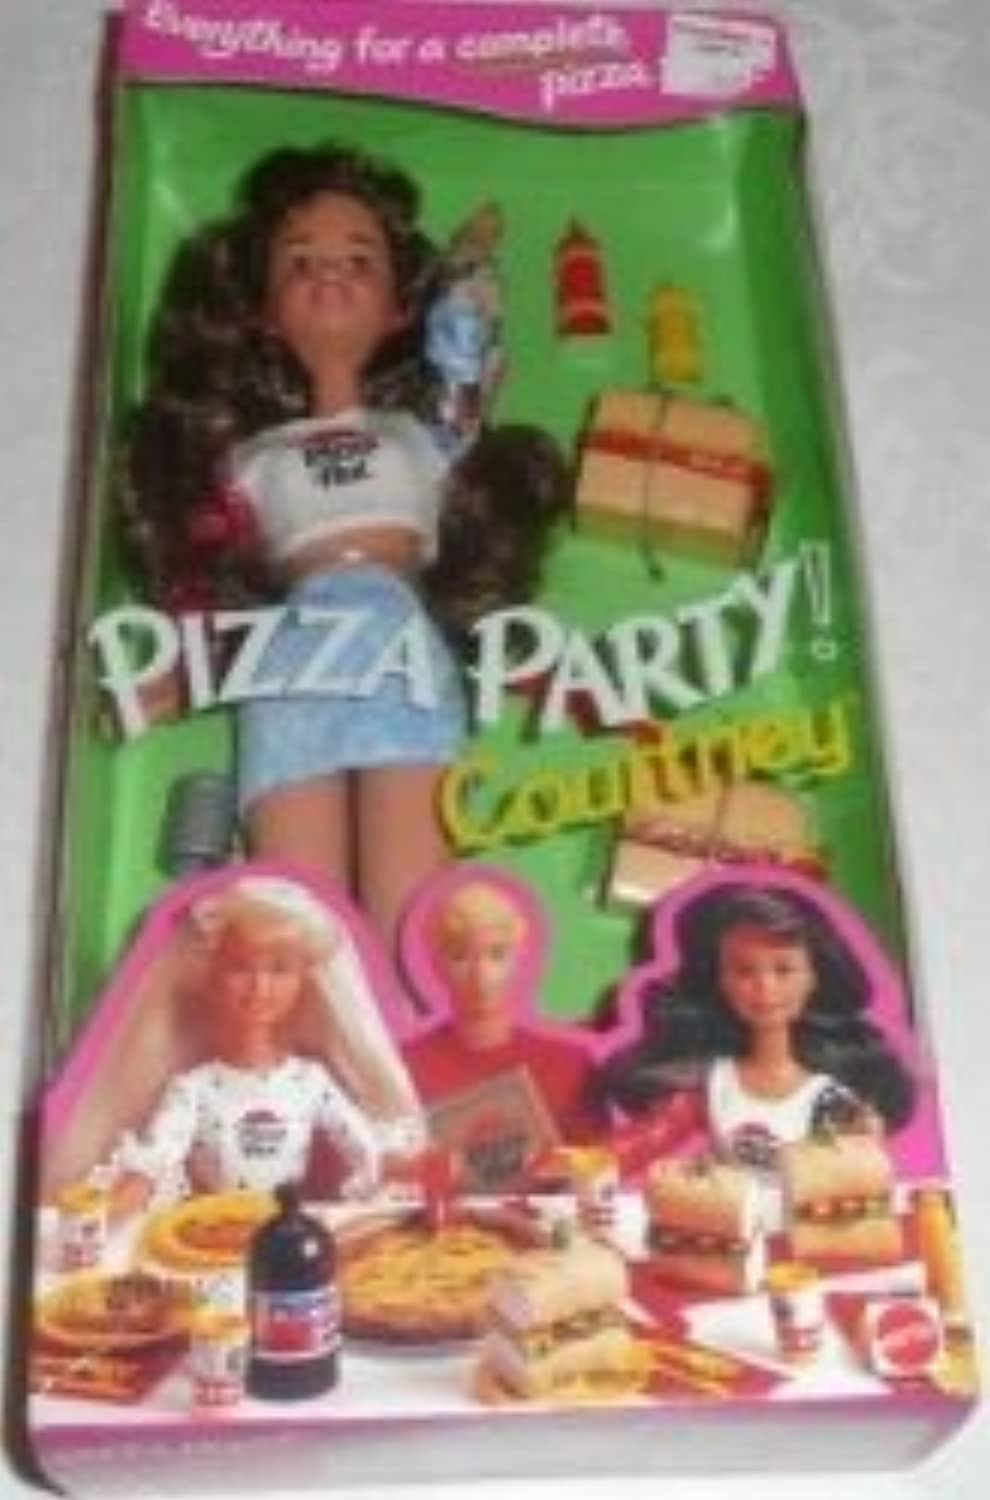 バービー - Pizza Party COURTNEY ドール - Pizza Hut 1994 マテル 131002fnp [並行輸入品]